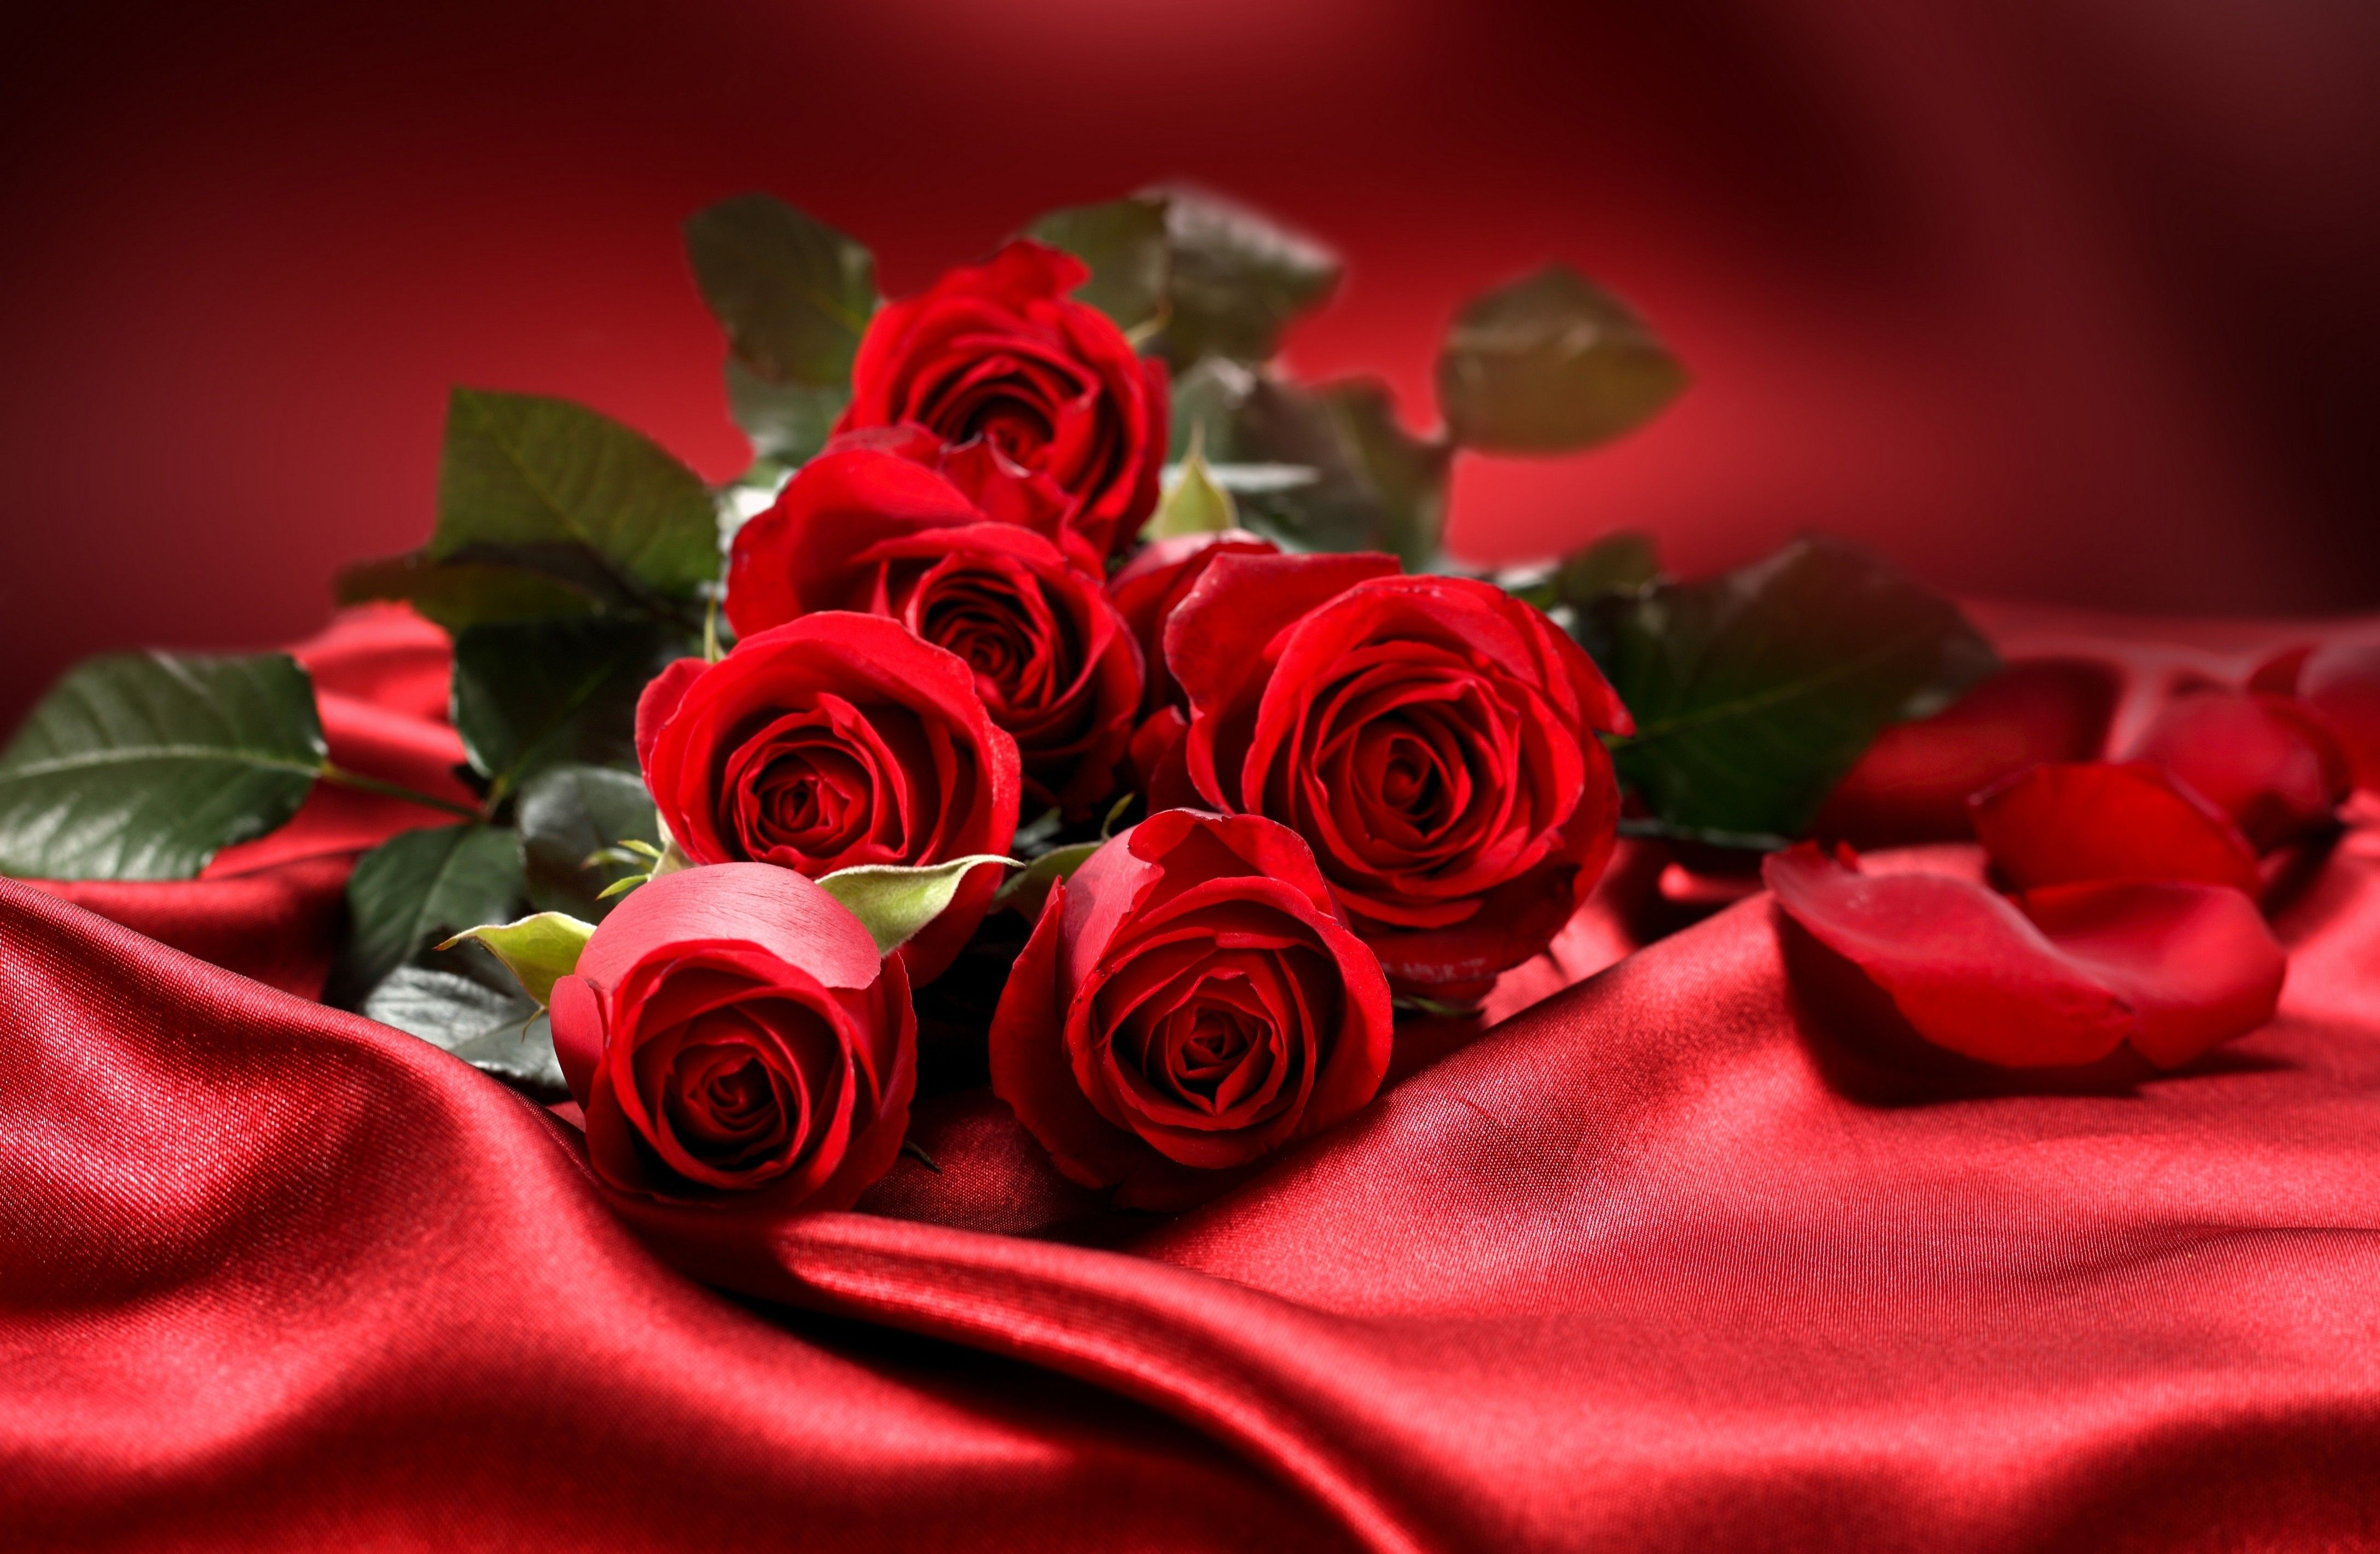 Red Roses On The Red Silk Love Moment Flowers Wallpapers Nature Wallpapers Download Beautiful Beautiful Flowers Wallpapers Red Rose Bouquet Rose Wallpaper